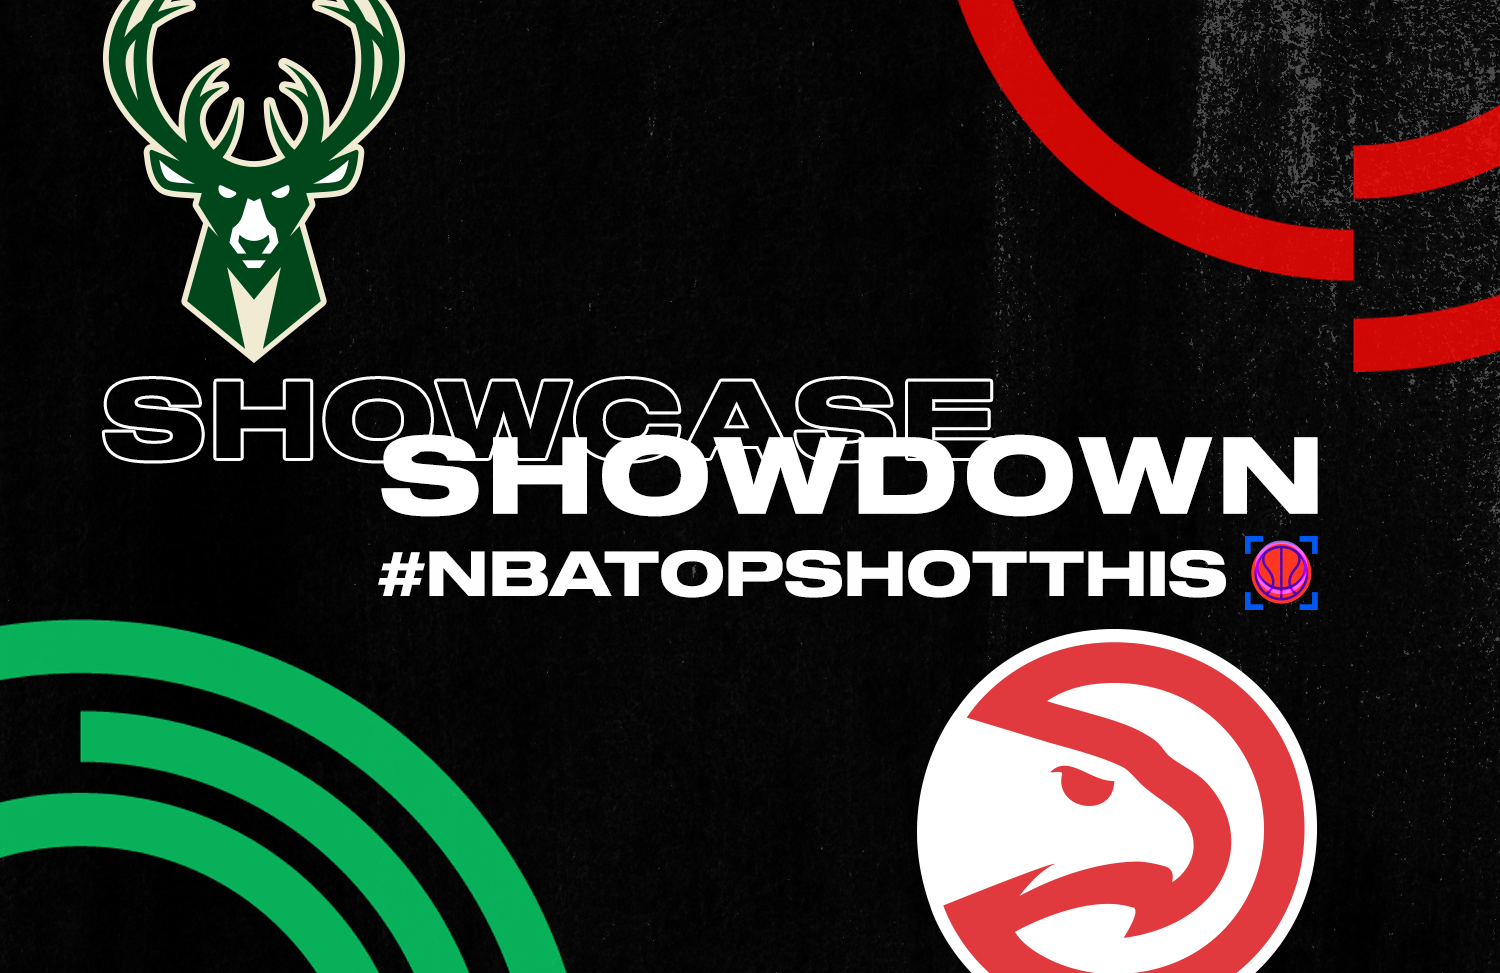 A roundup of Showcases in advance of Game 6...